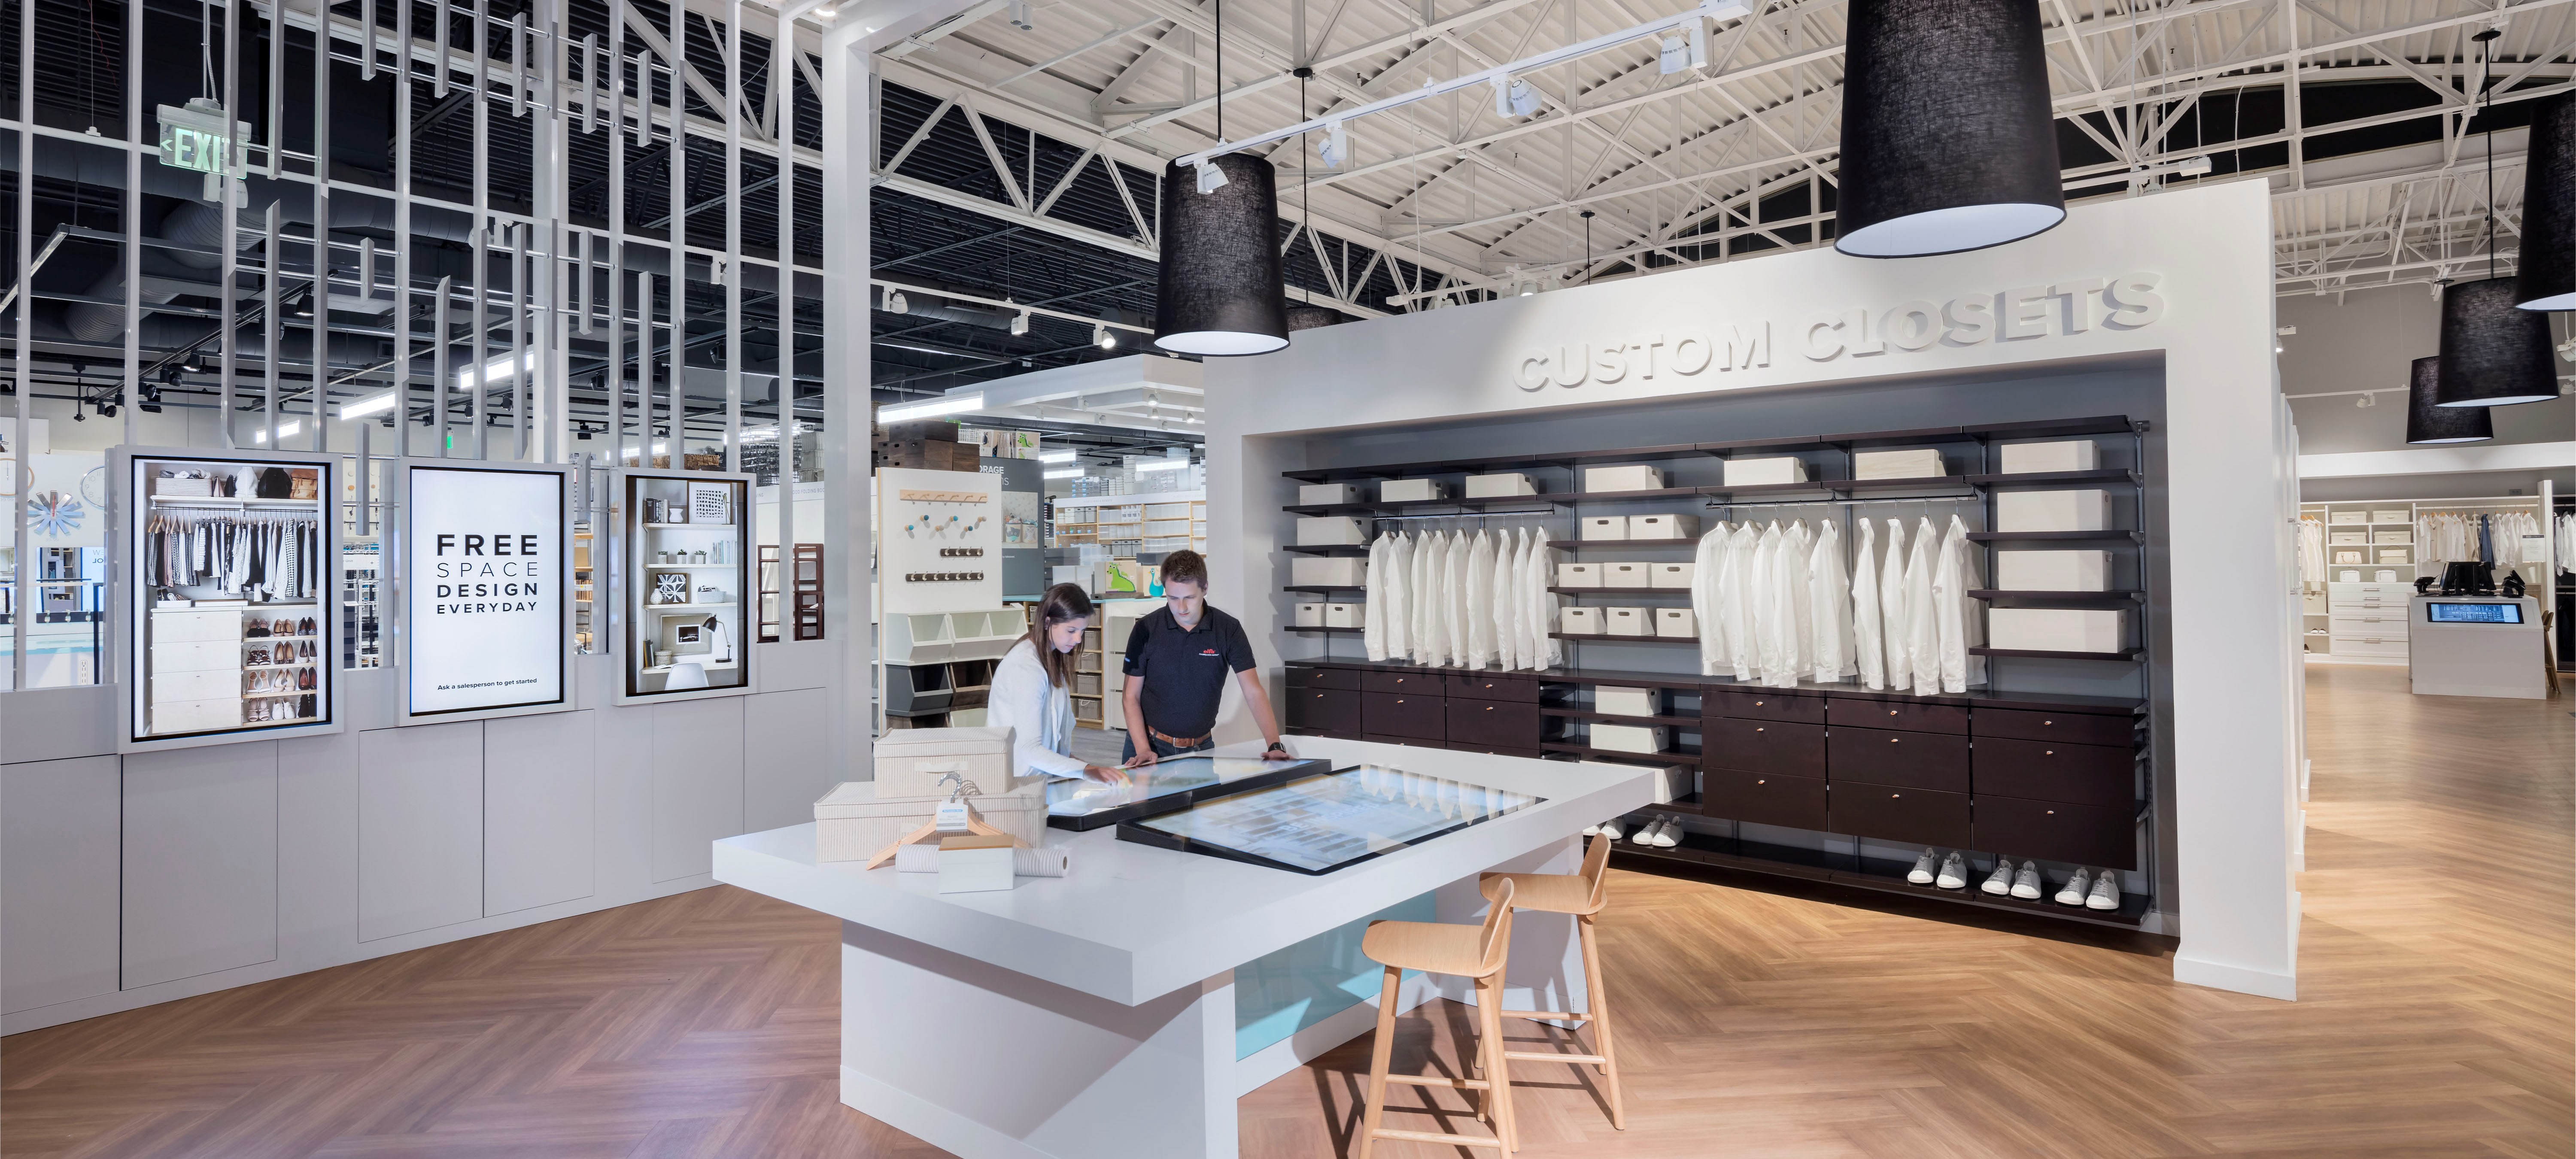 Winning with MACH: Container Store